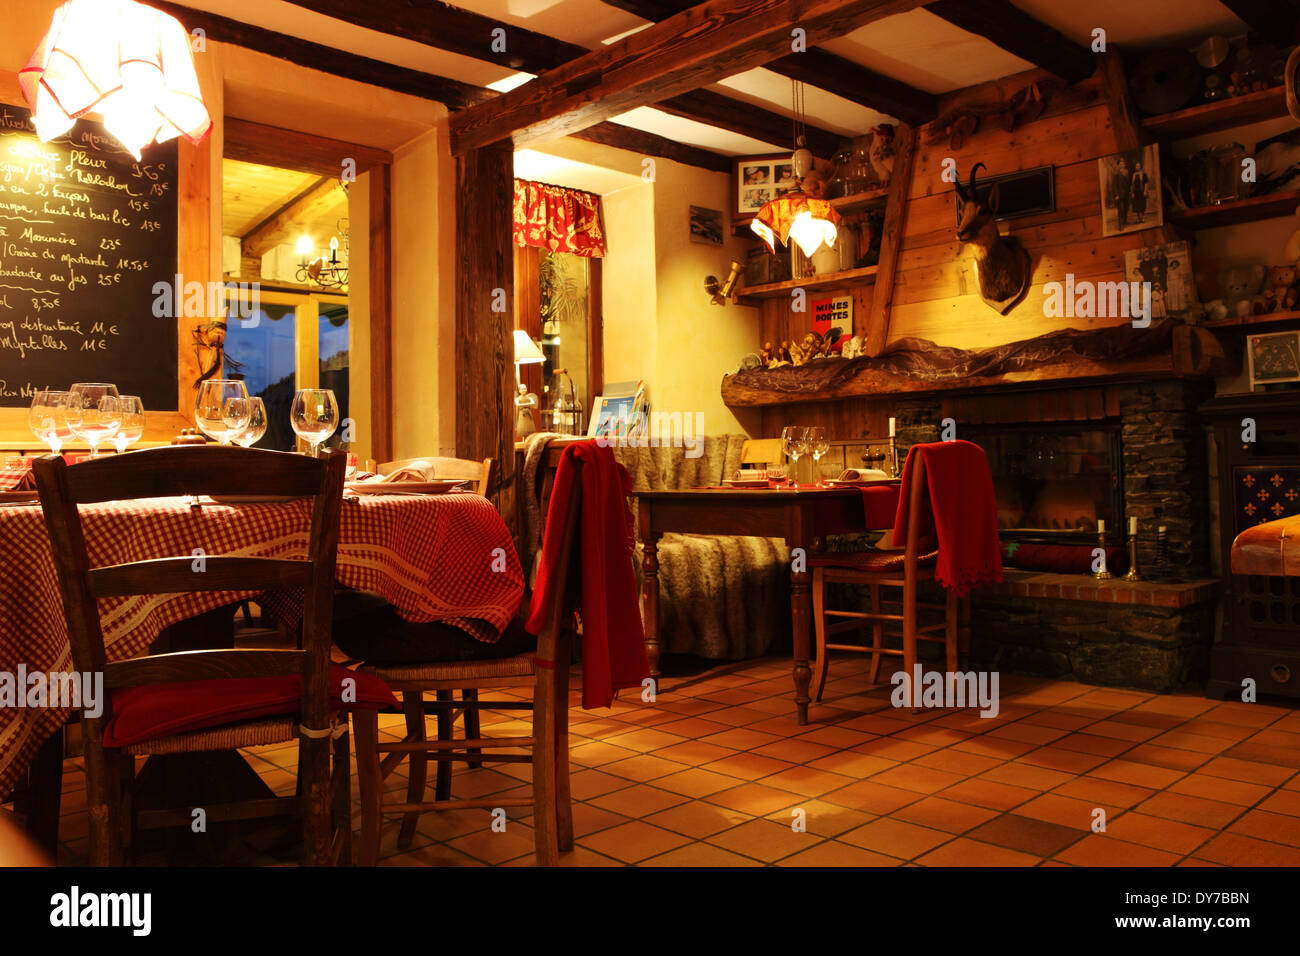 The Au P'tit Creux restaurant in Alpe d'Huez, France. Stock Photo